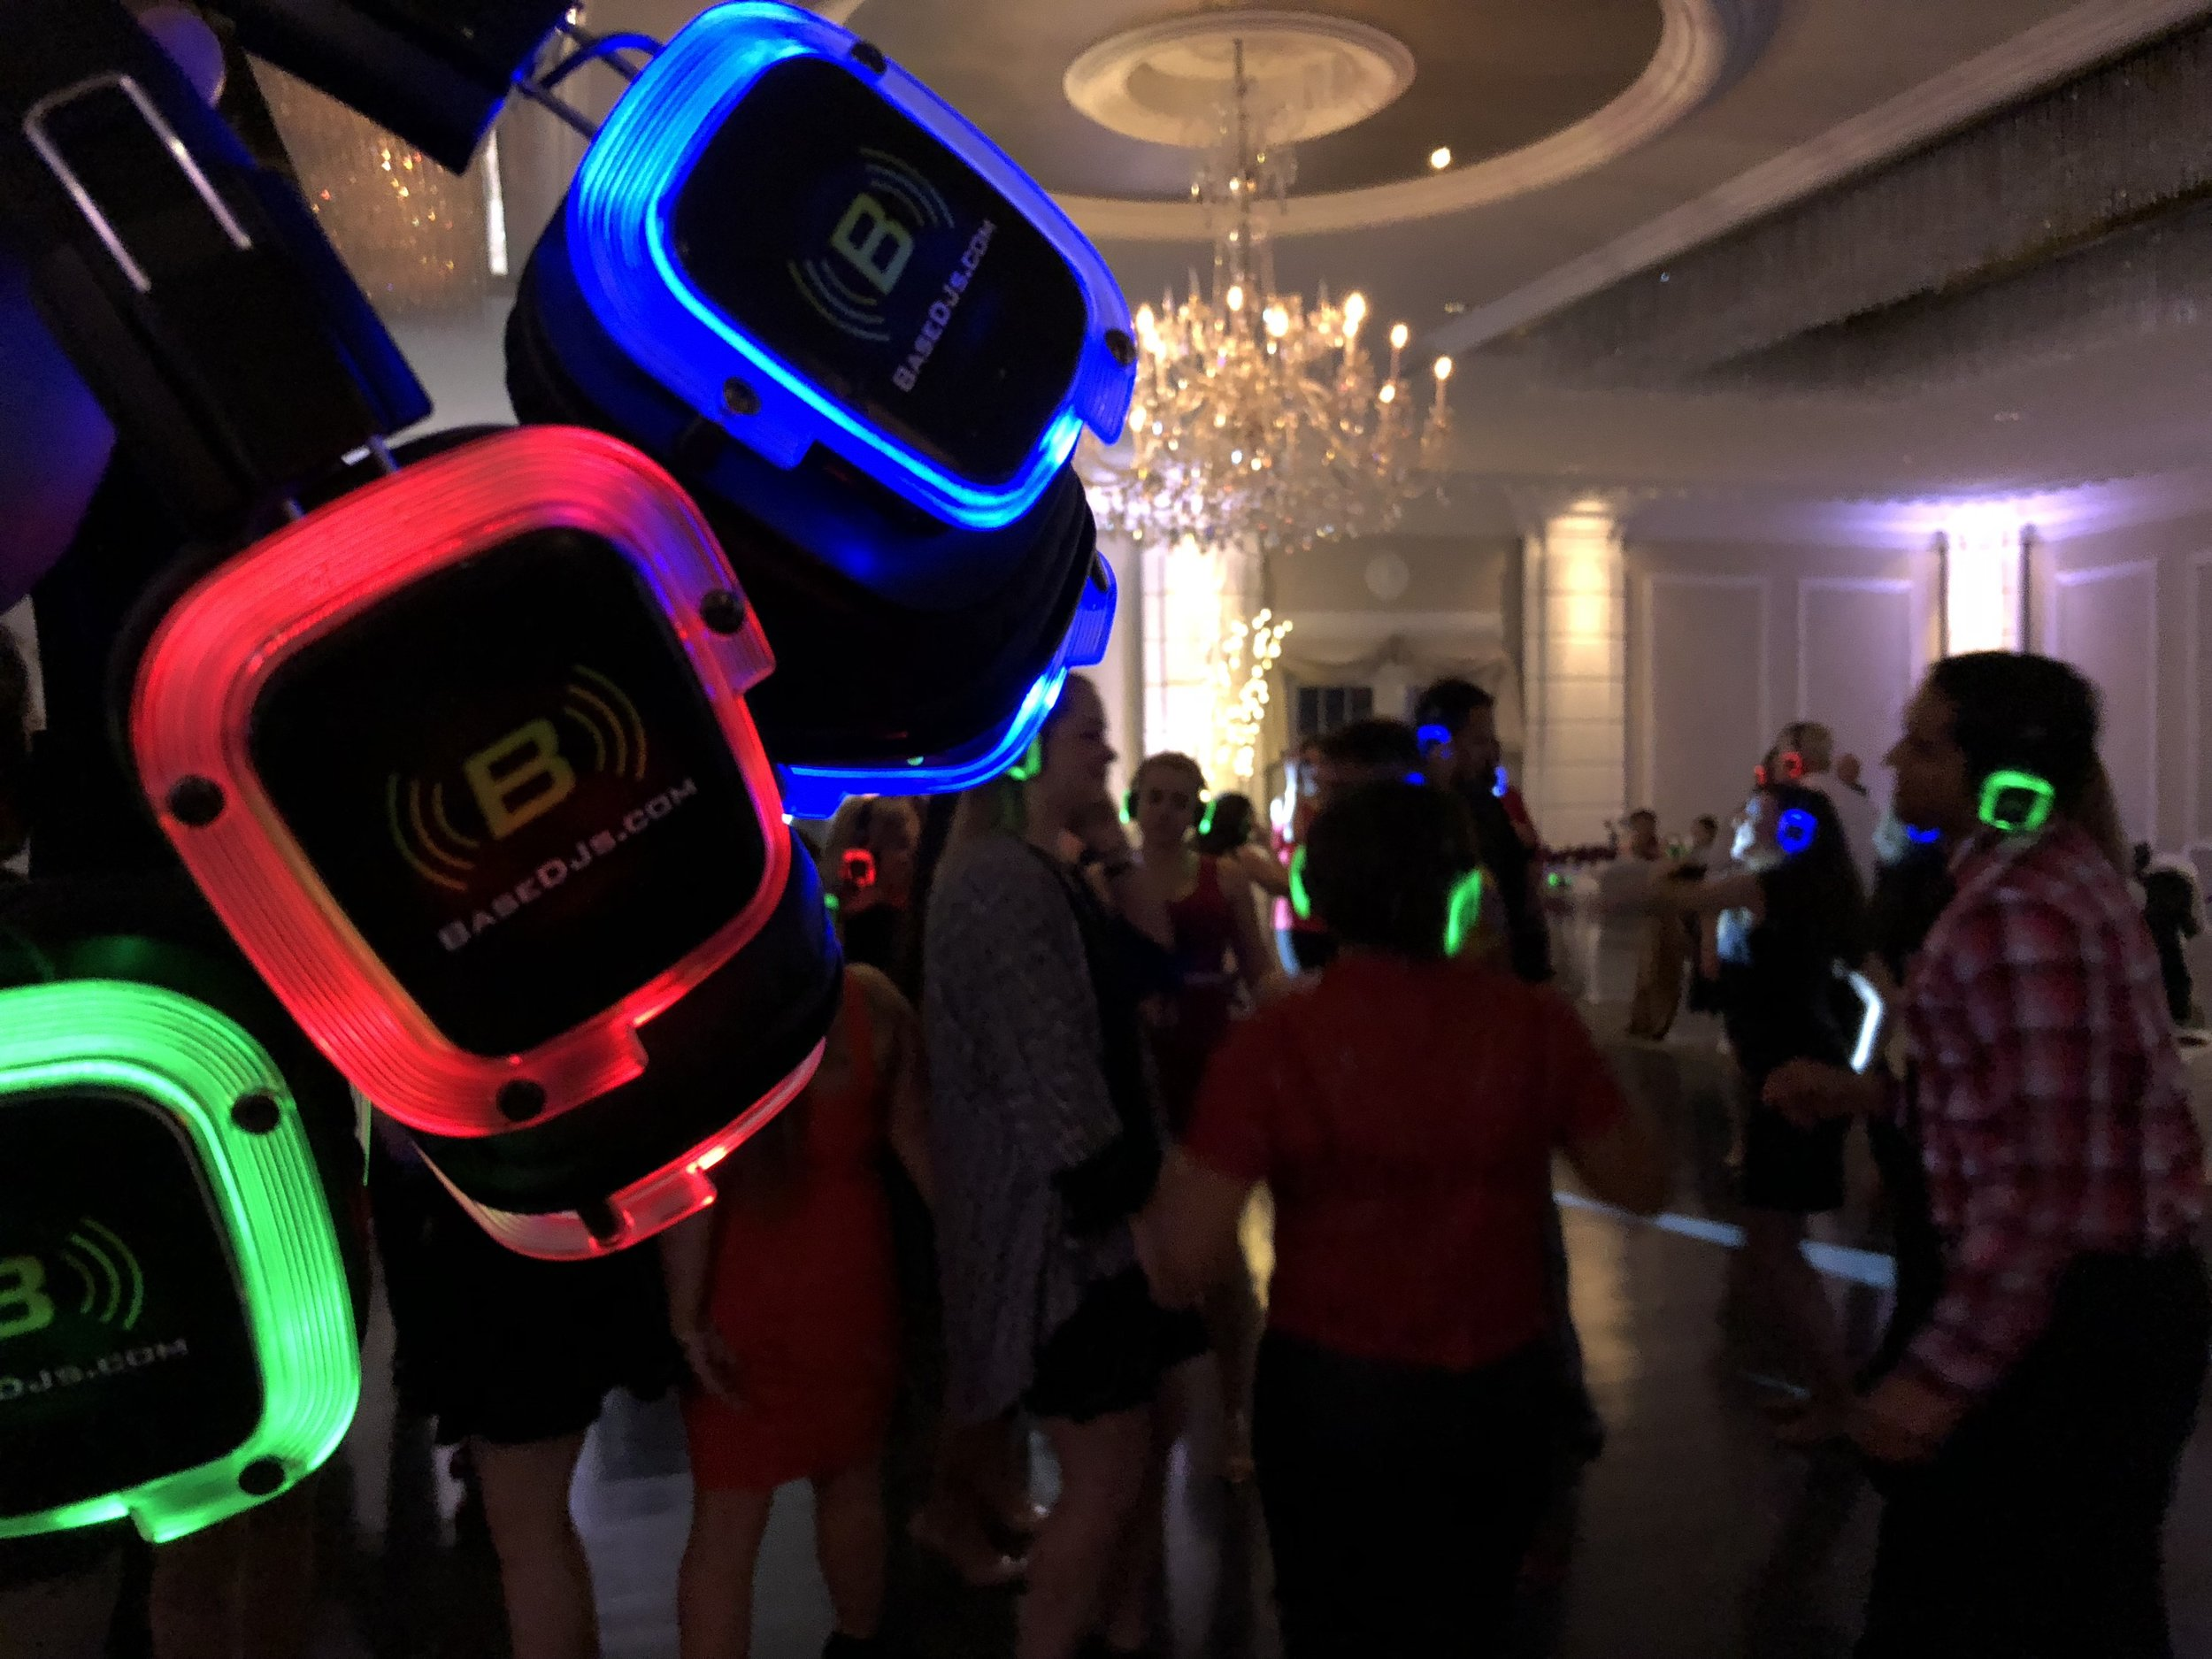 Silent Disco - Shhhhh..... There isn't music playing. It's all in your head. We pass out wireless headphones with three channels on them. Each channel has a different genre or style of music with one being the live DJ.